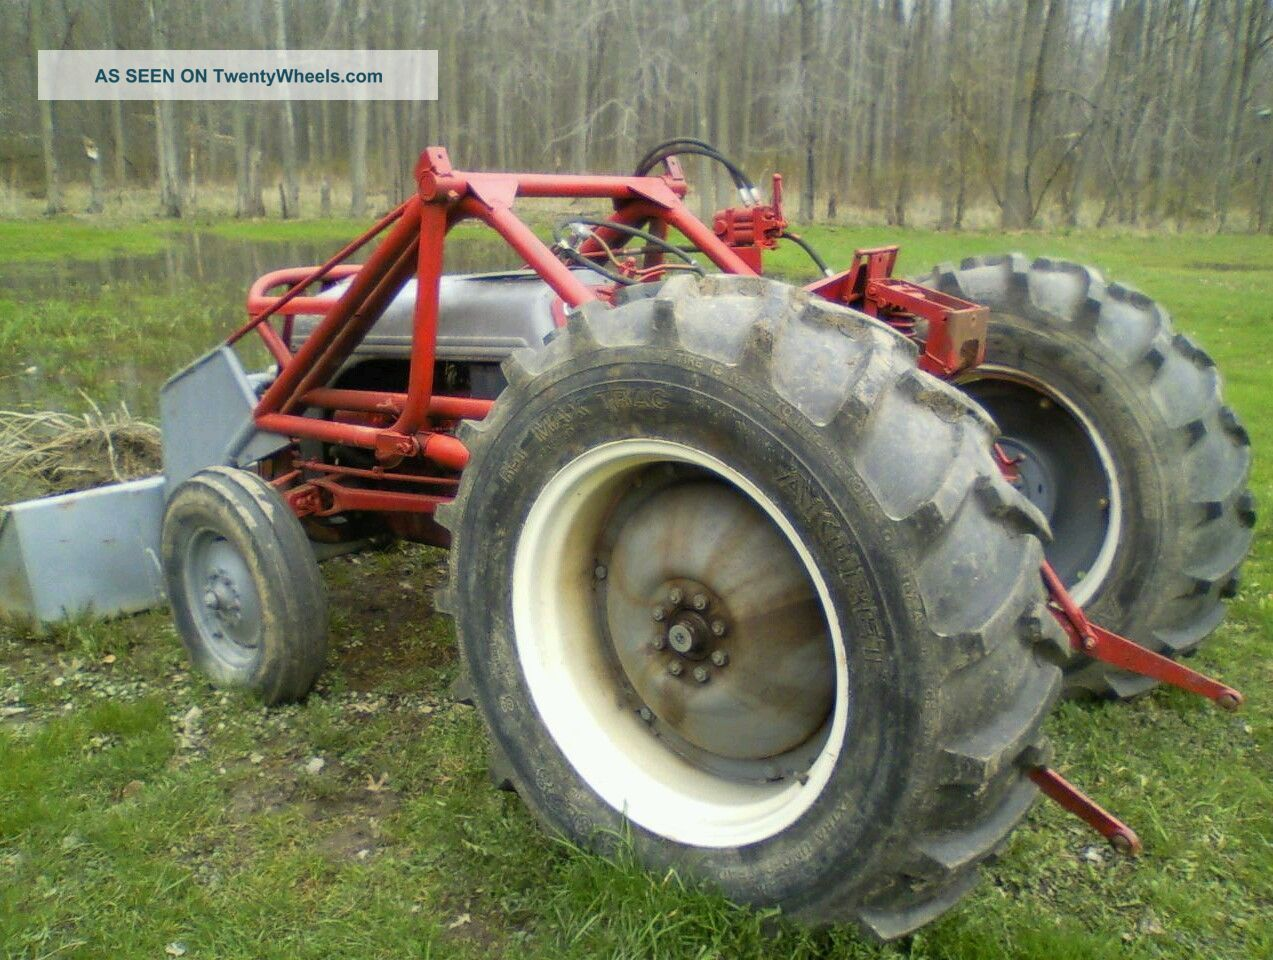 Ford Tractor Gearboxes : Ford tractor stuck in gear